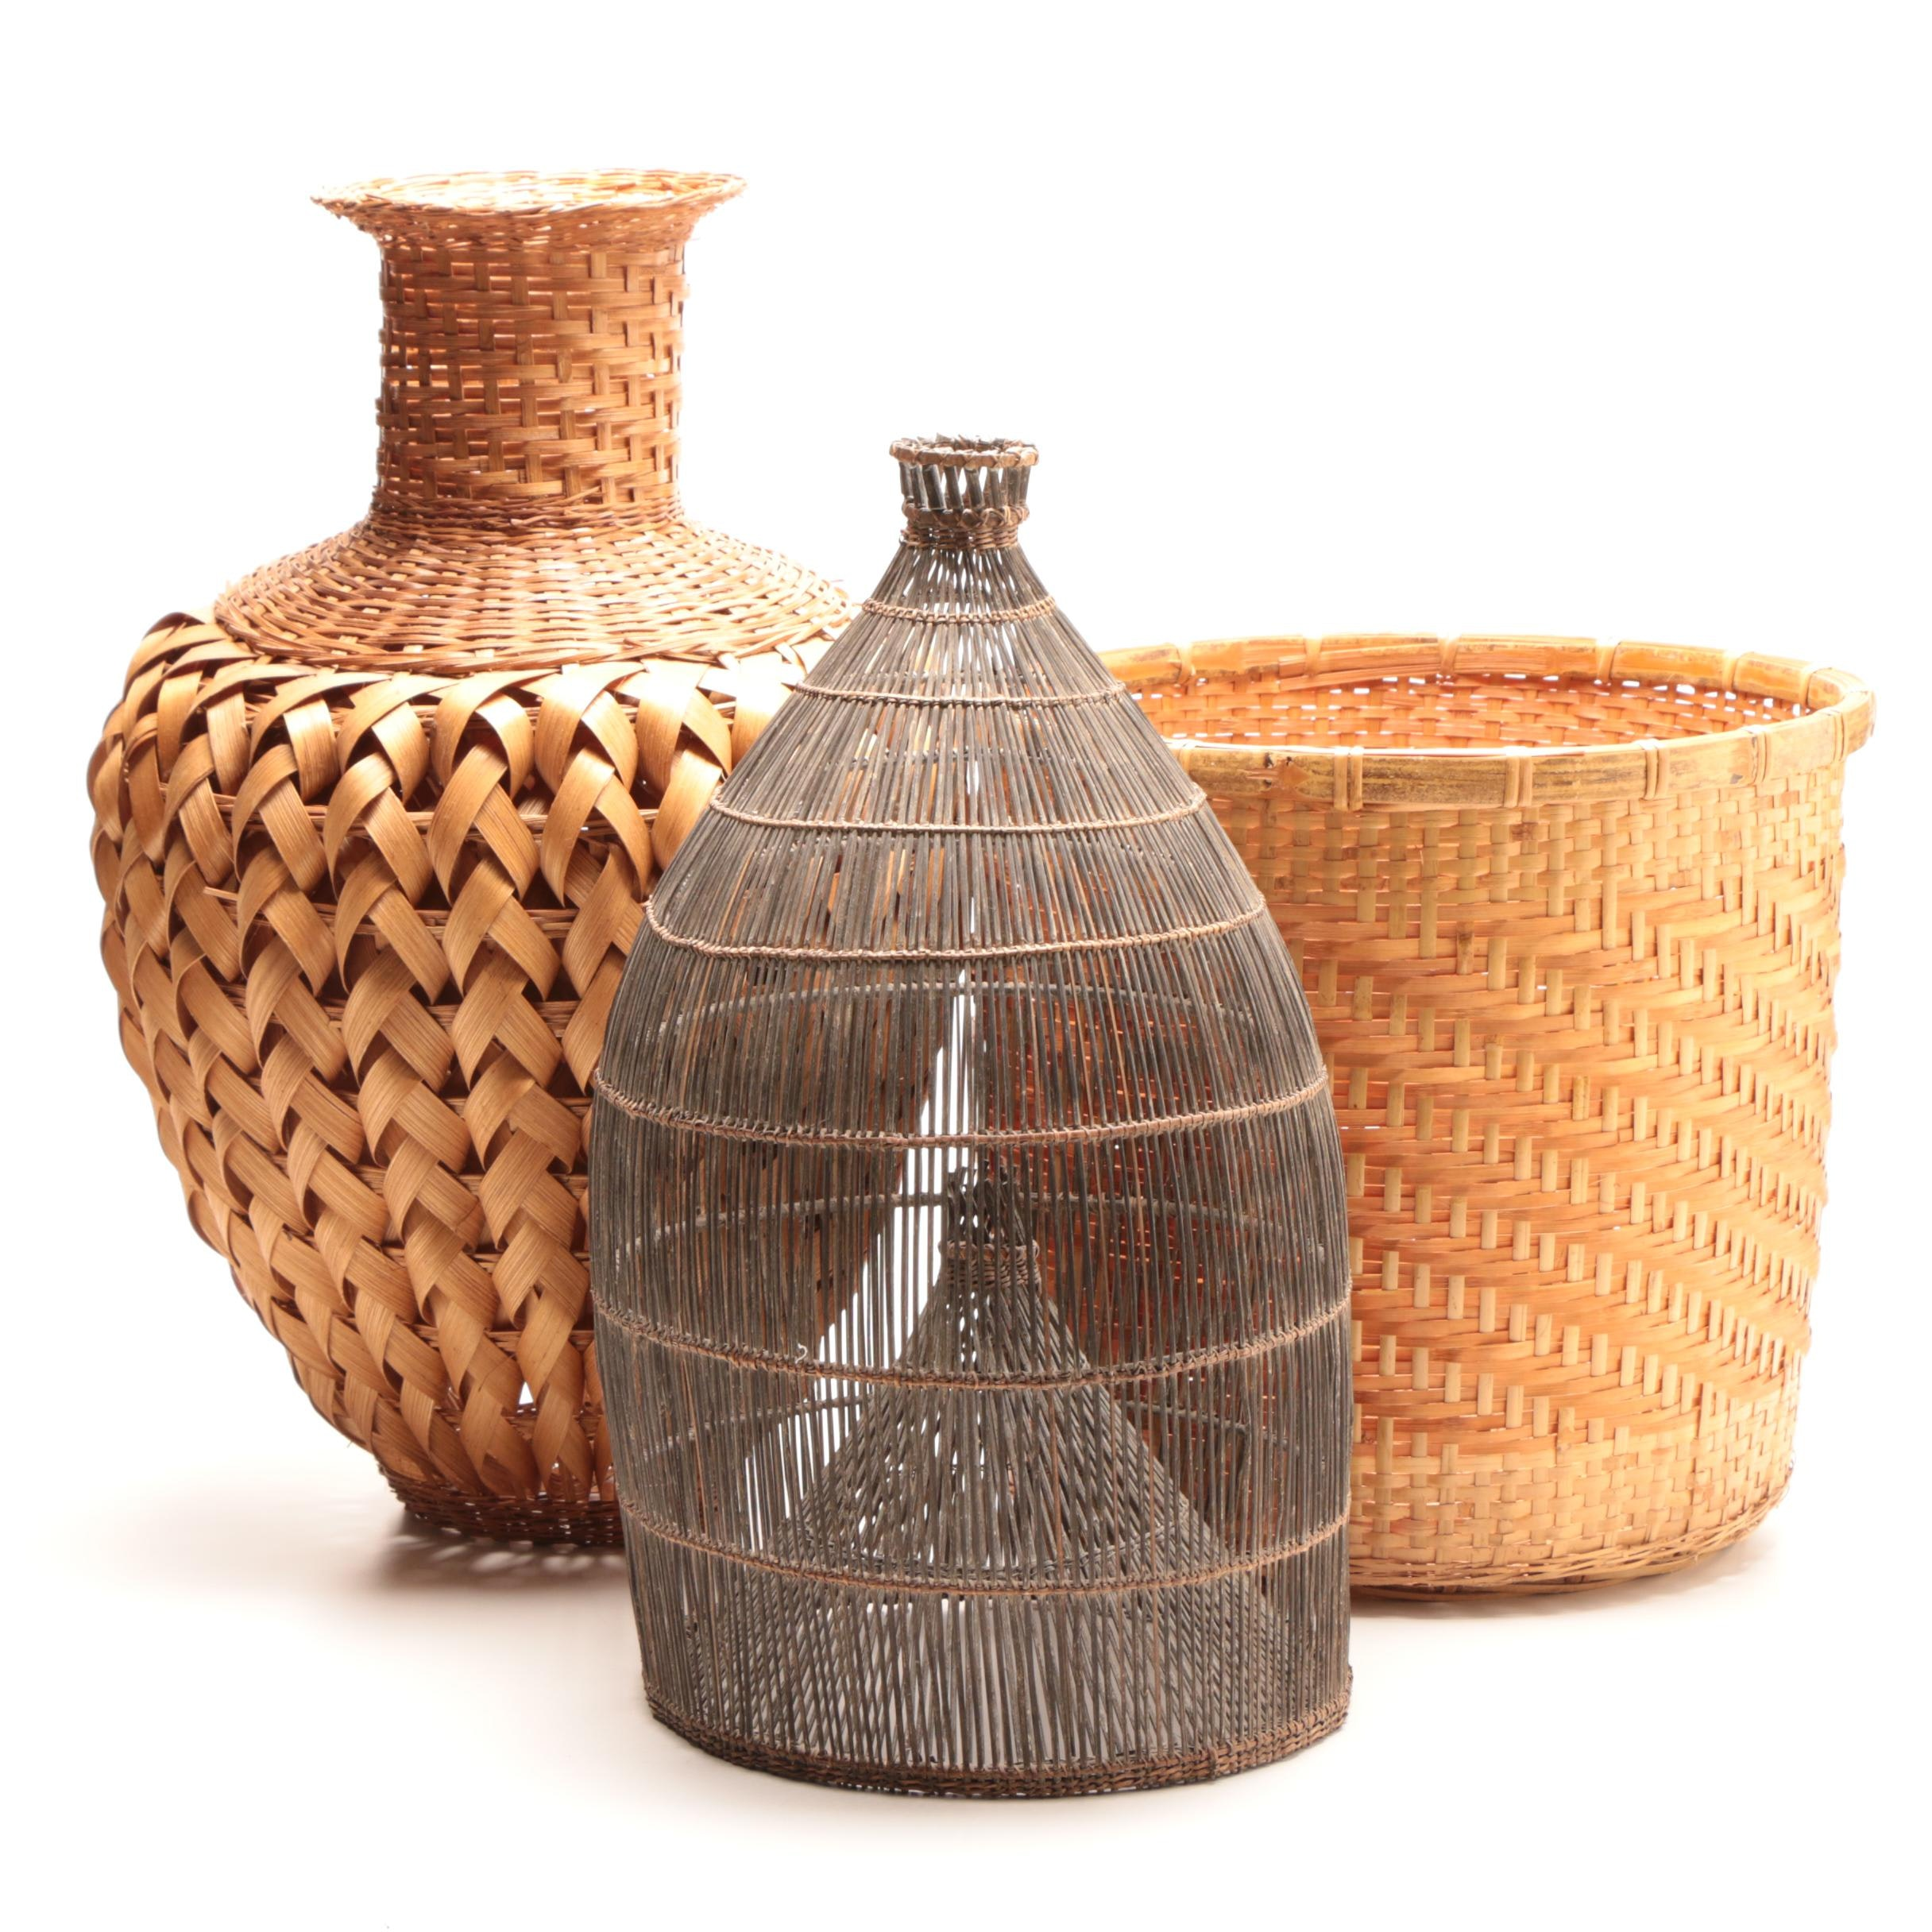 Grouping of Hand Woven Wicker Baskets Including Fishing Trap Style Basket